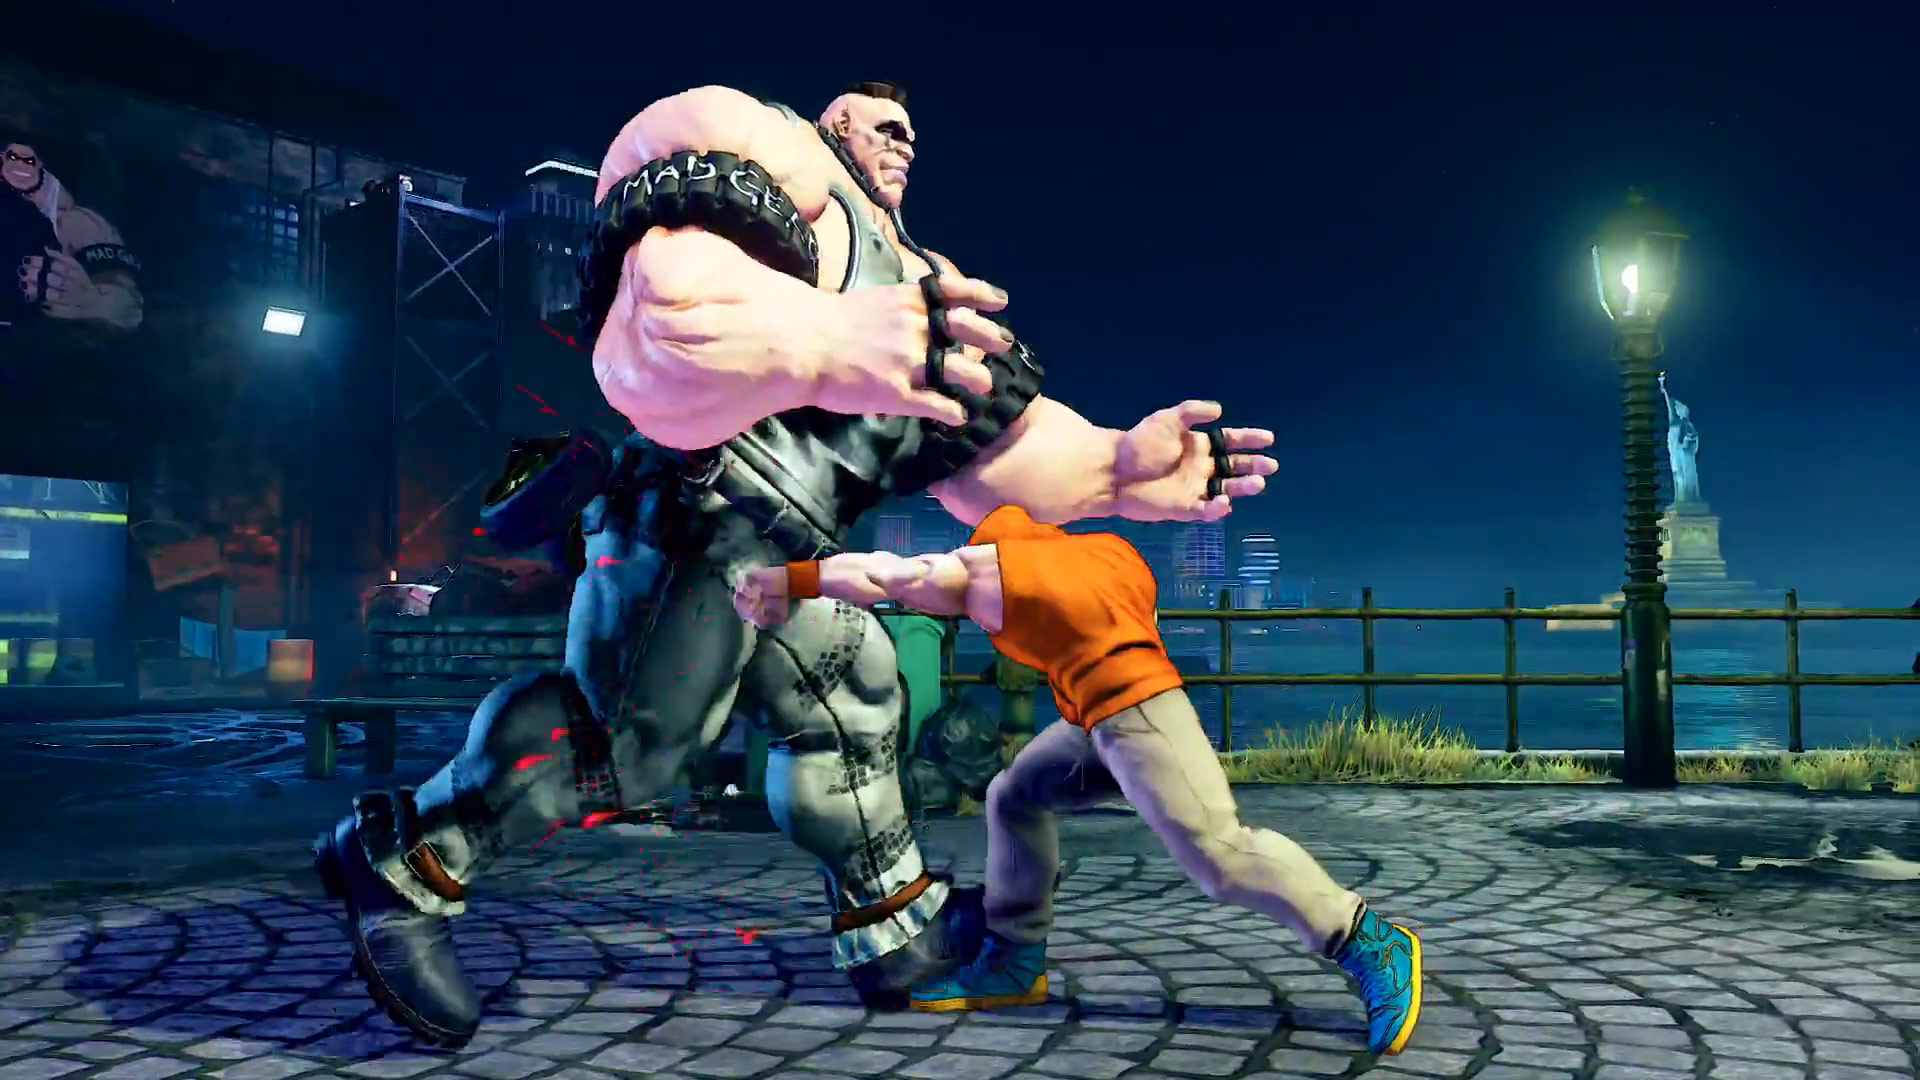 Abigail Street Fighter 5 screen shots 3 out of 11 image gallery